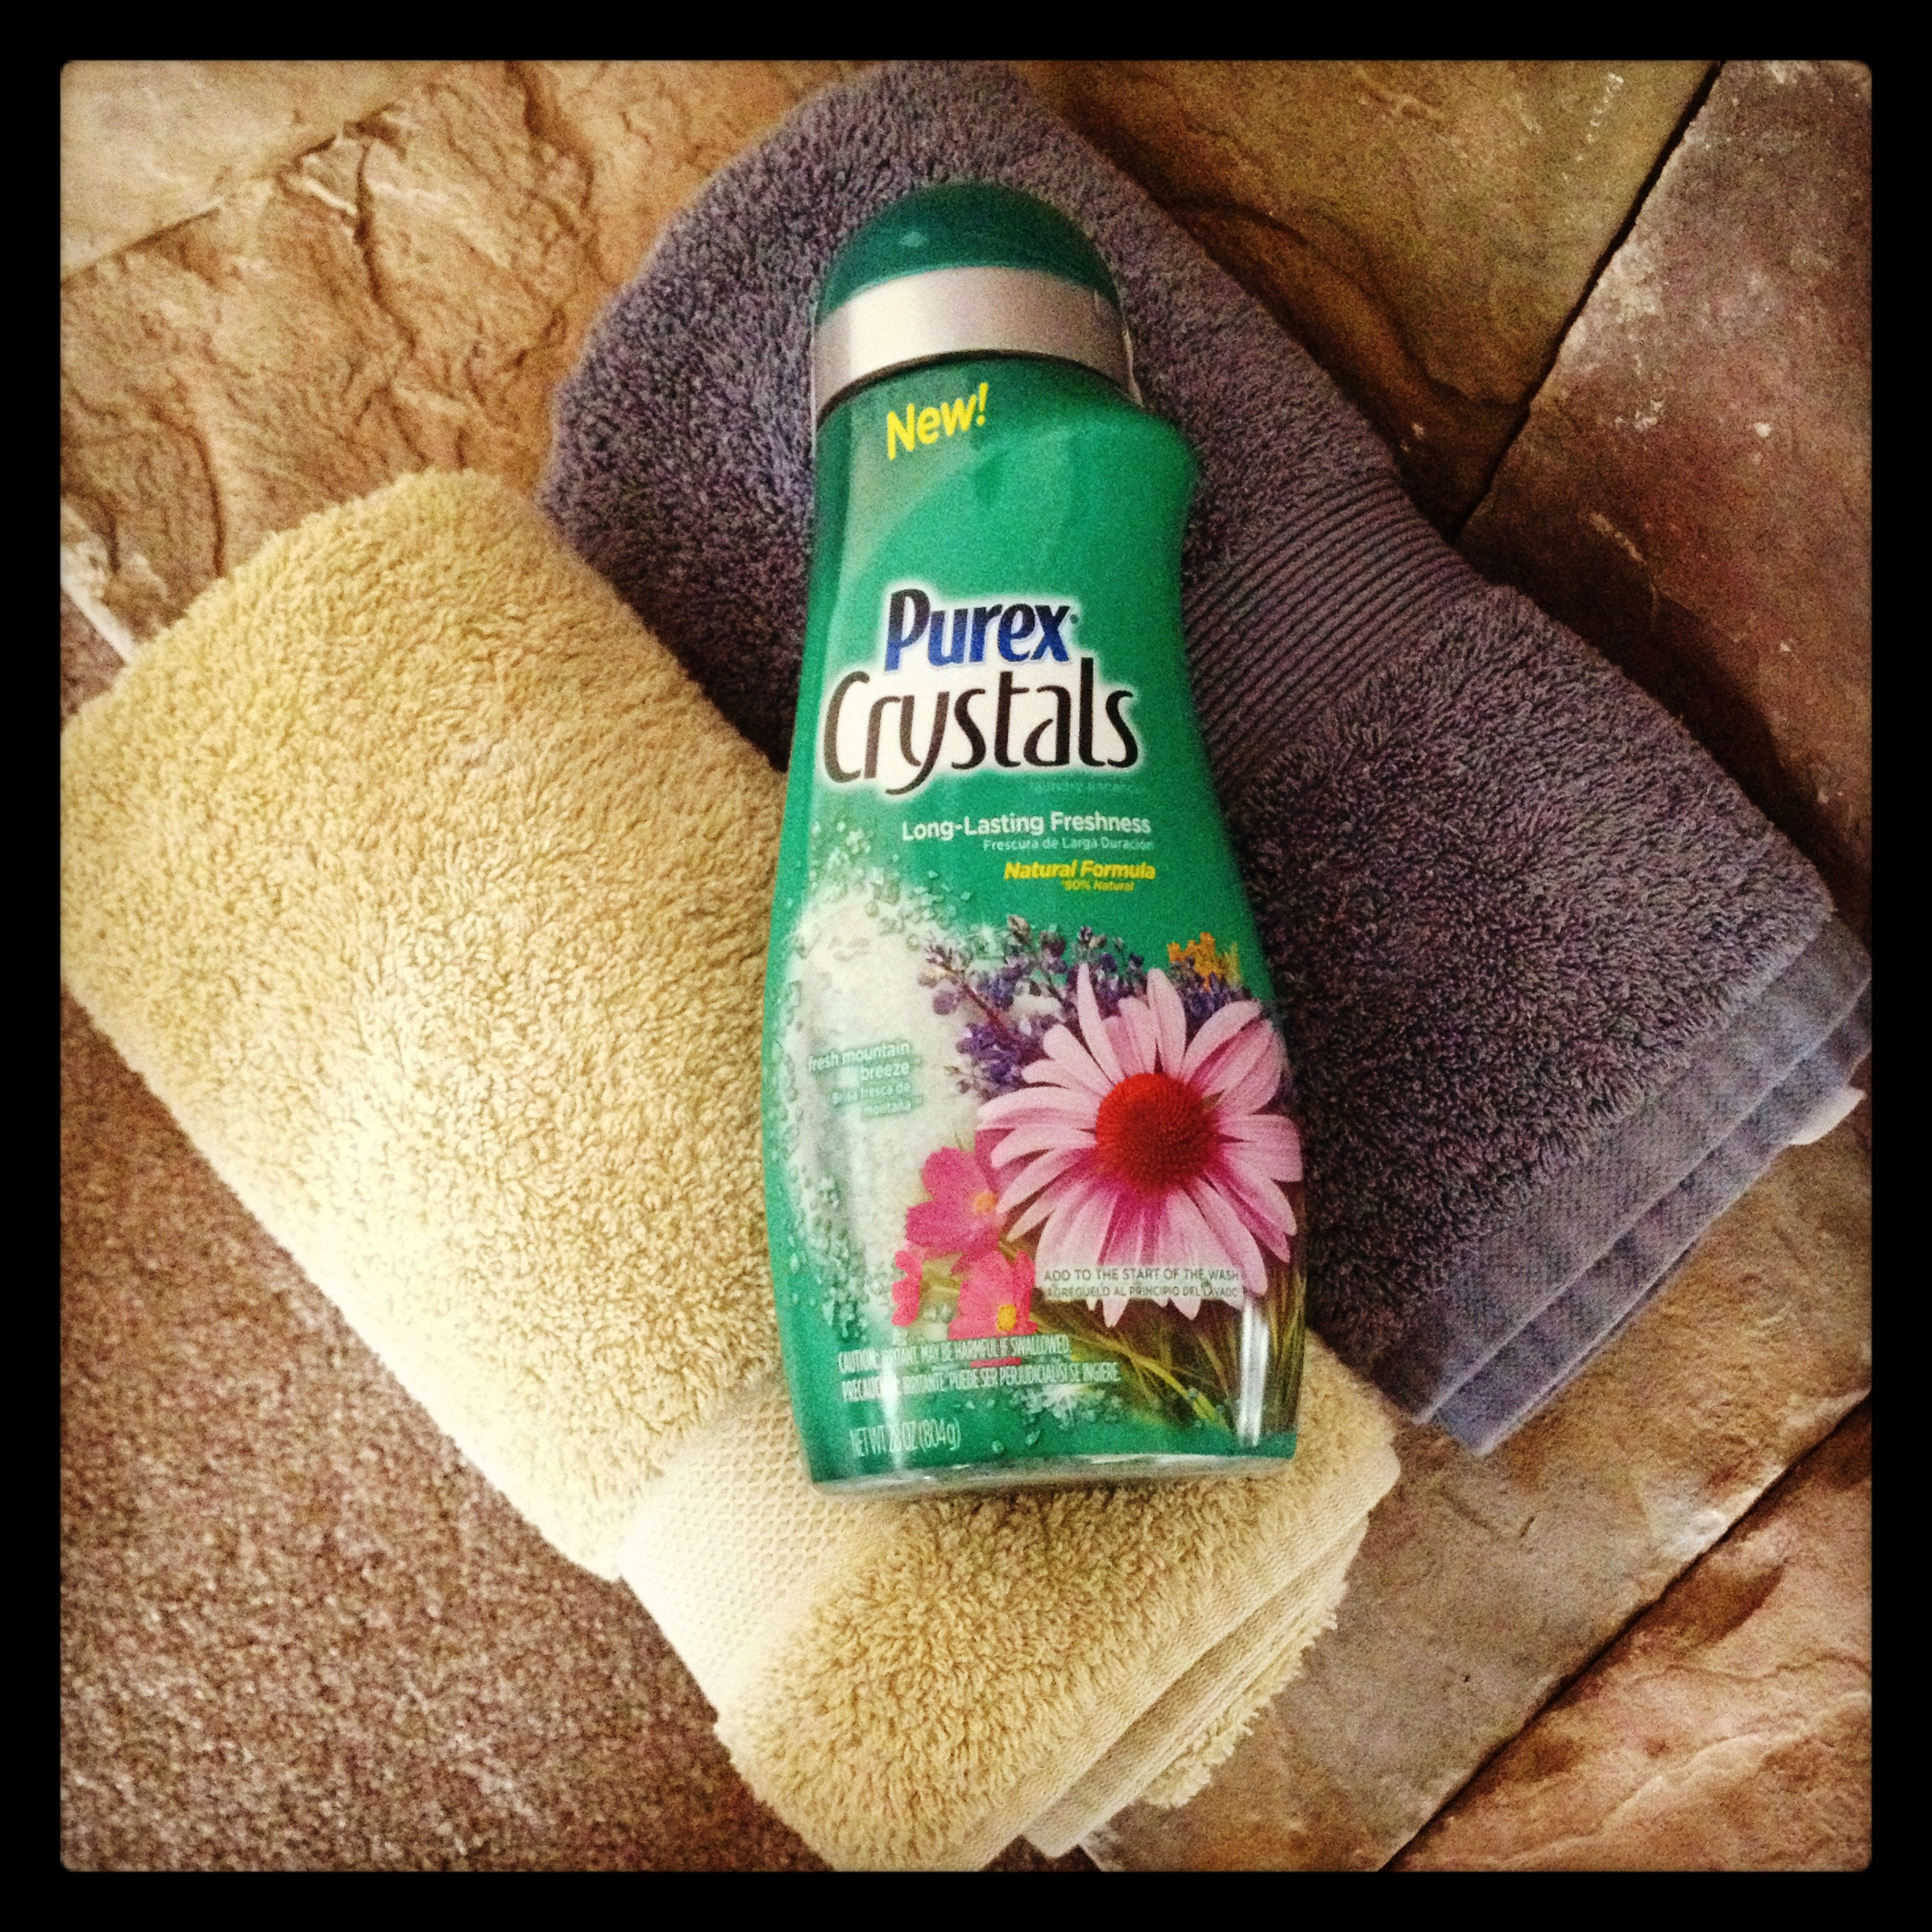 Purex Crystals Fresh Mountain Breeze Review Amp Giveaway